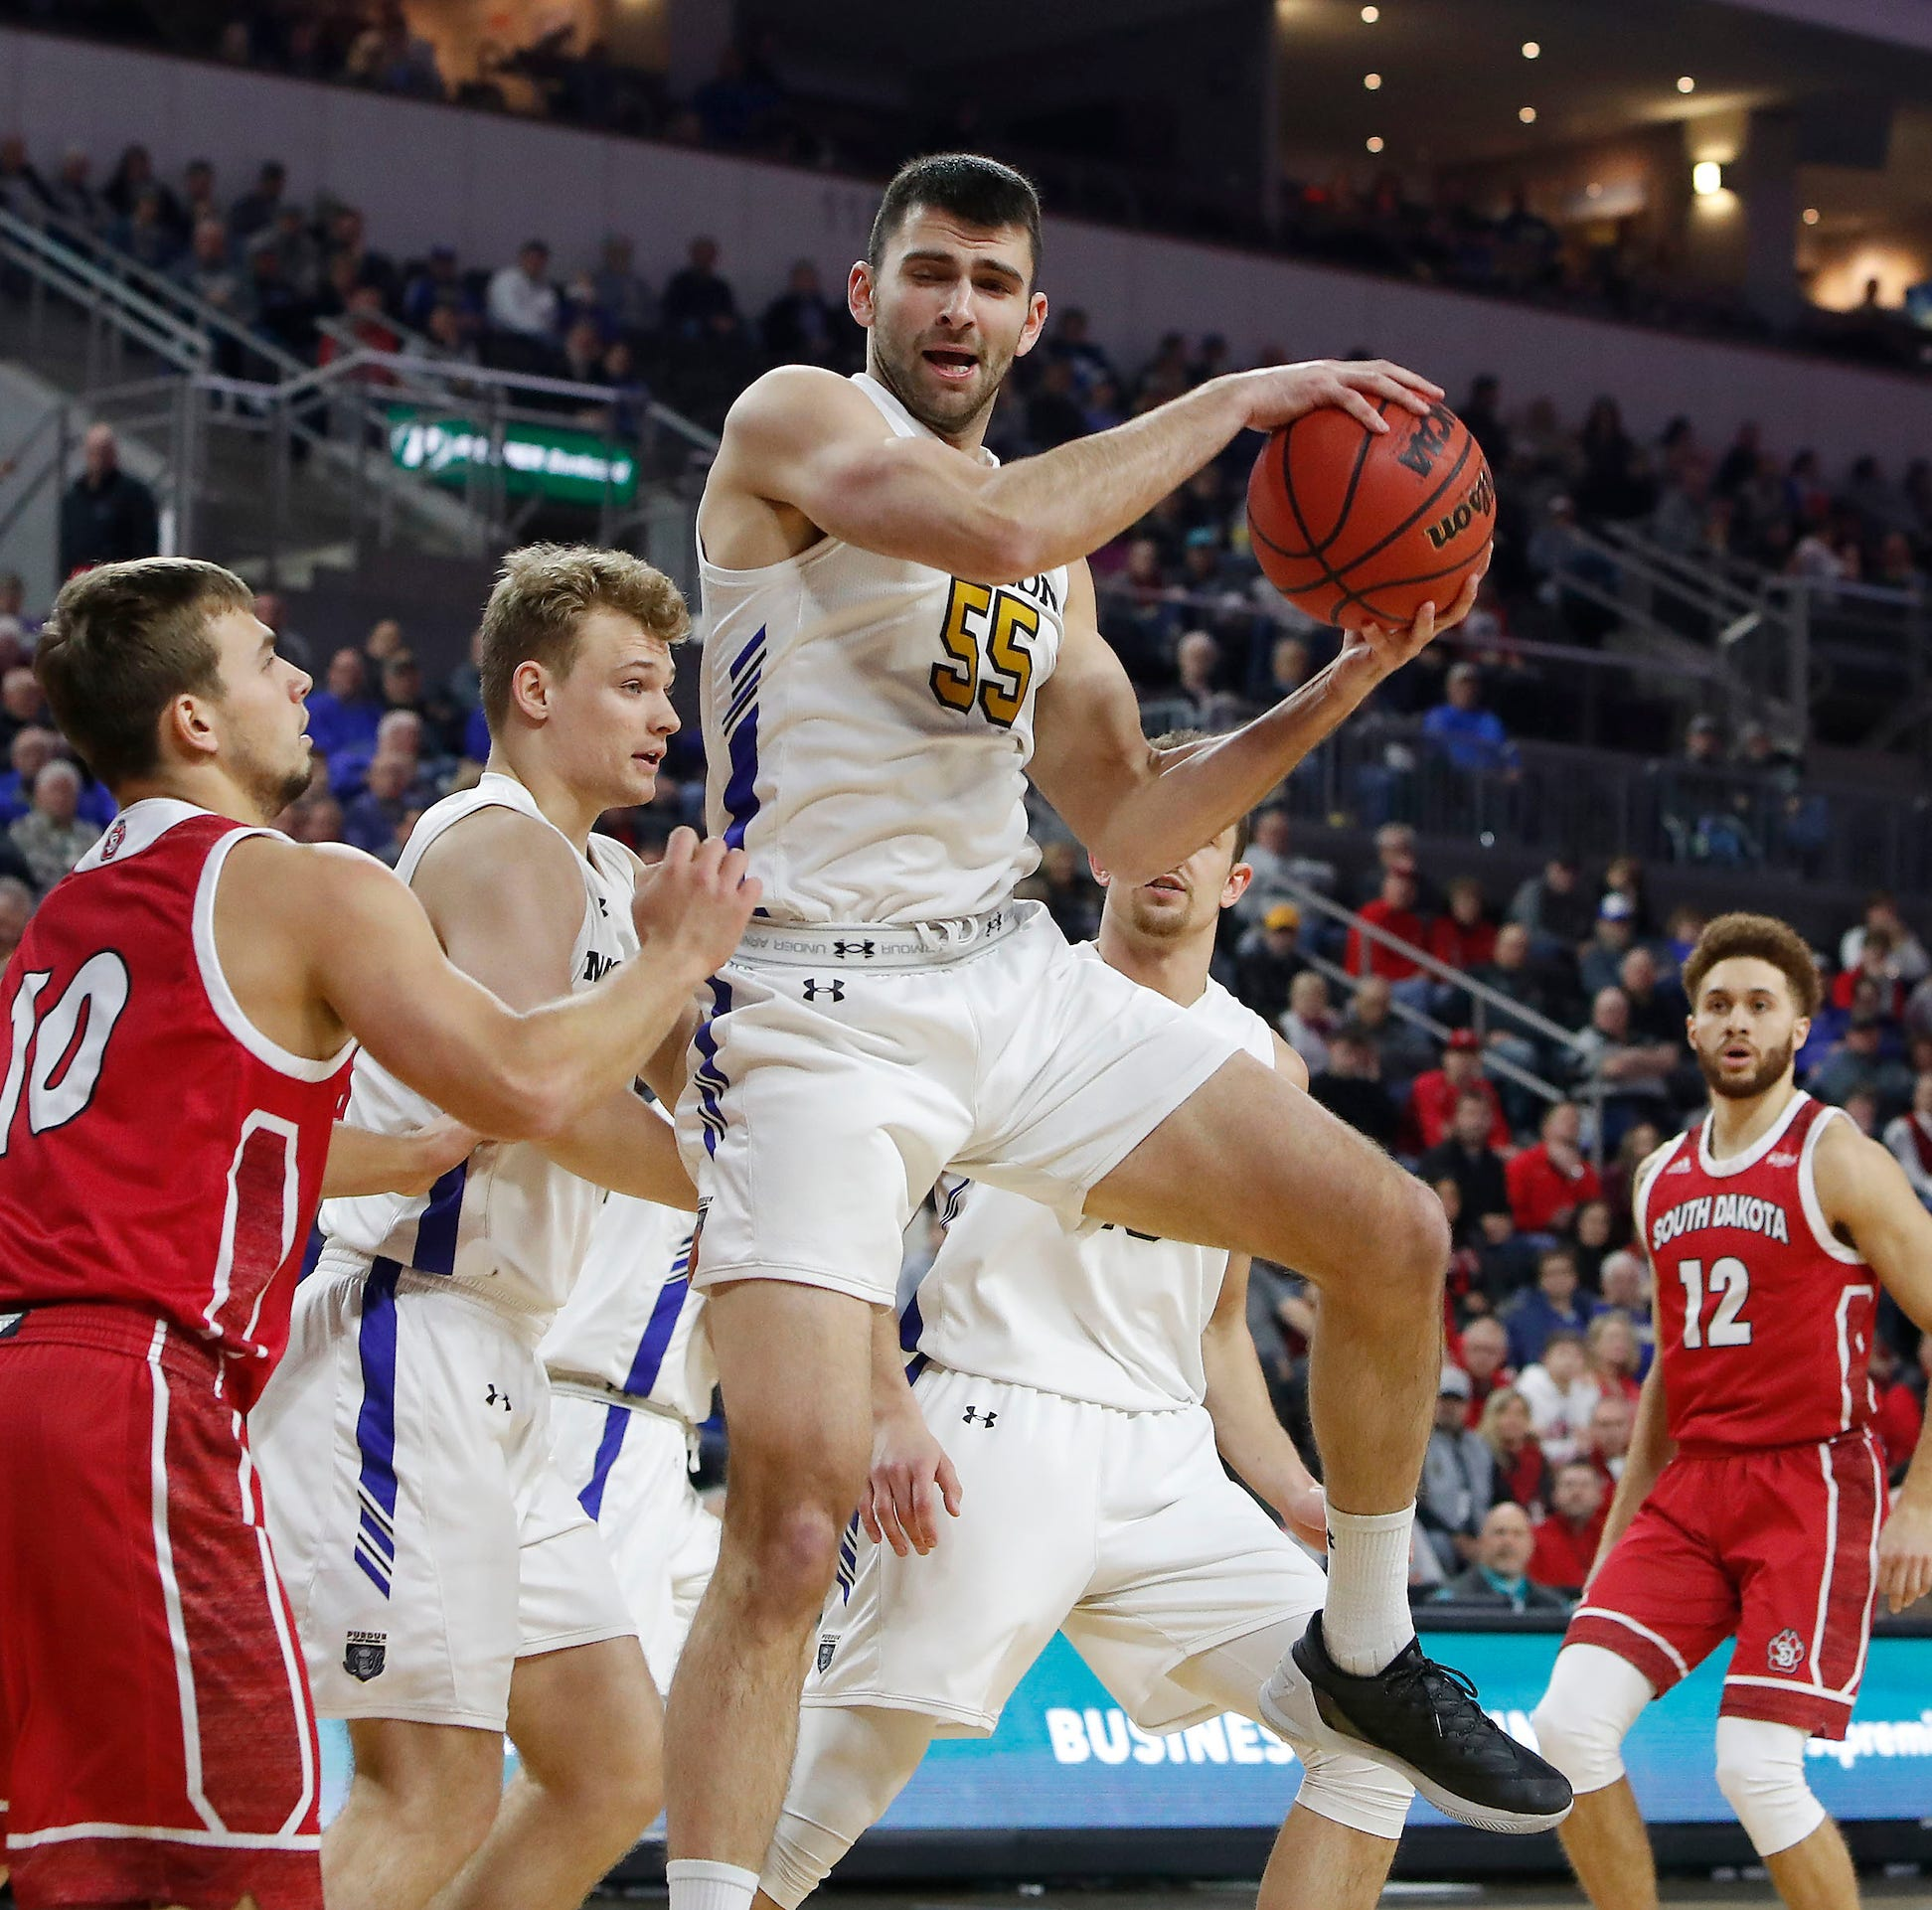 Purdue Fort Wayne brings South Dakota's season to crashing halt in Summit League quarterfinals